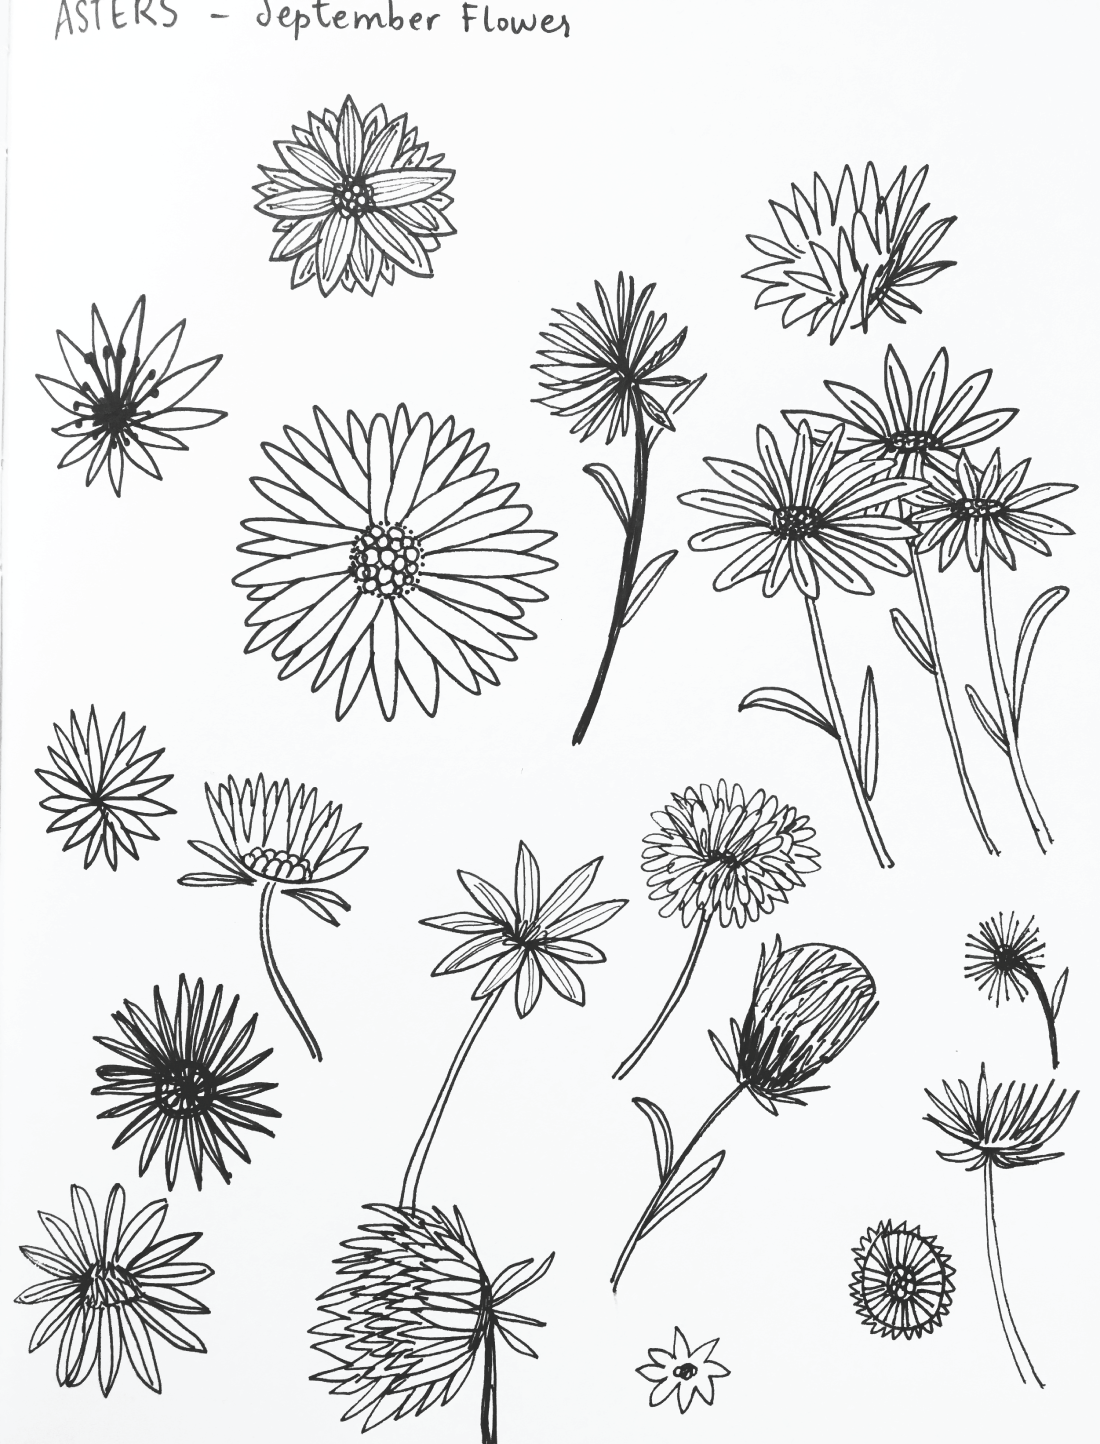 Delightedco Com Retail Brand Name For Sale Birth Flower Tattoos Aster Tattoo Flower Sketches